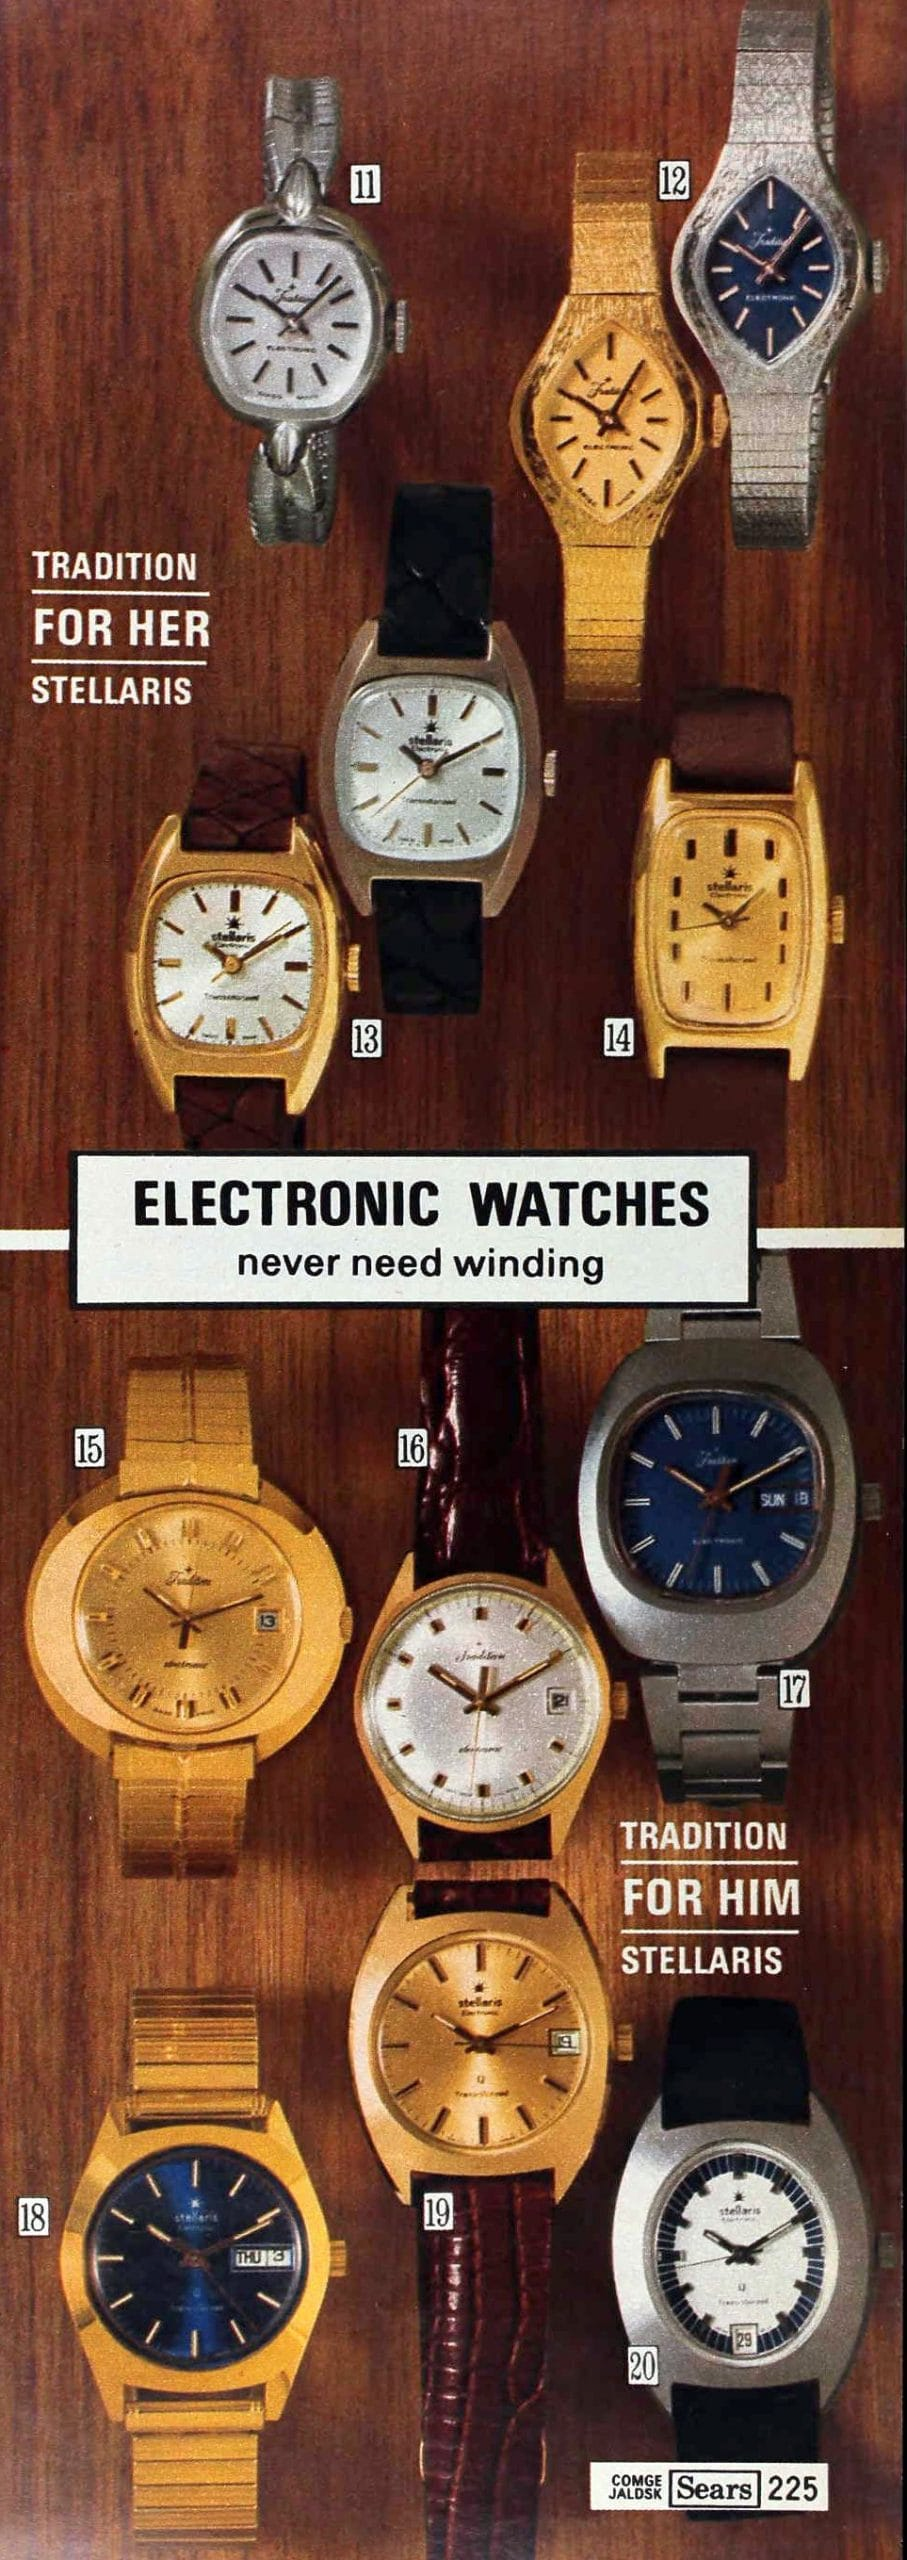 Vintage 1970s electronic watches (1975)